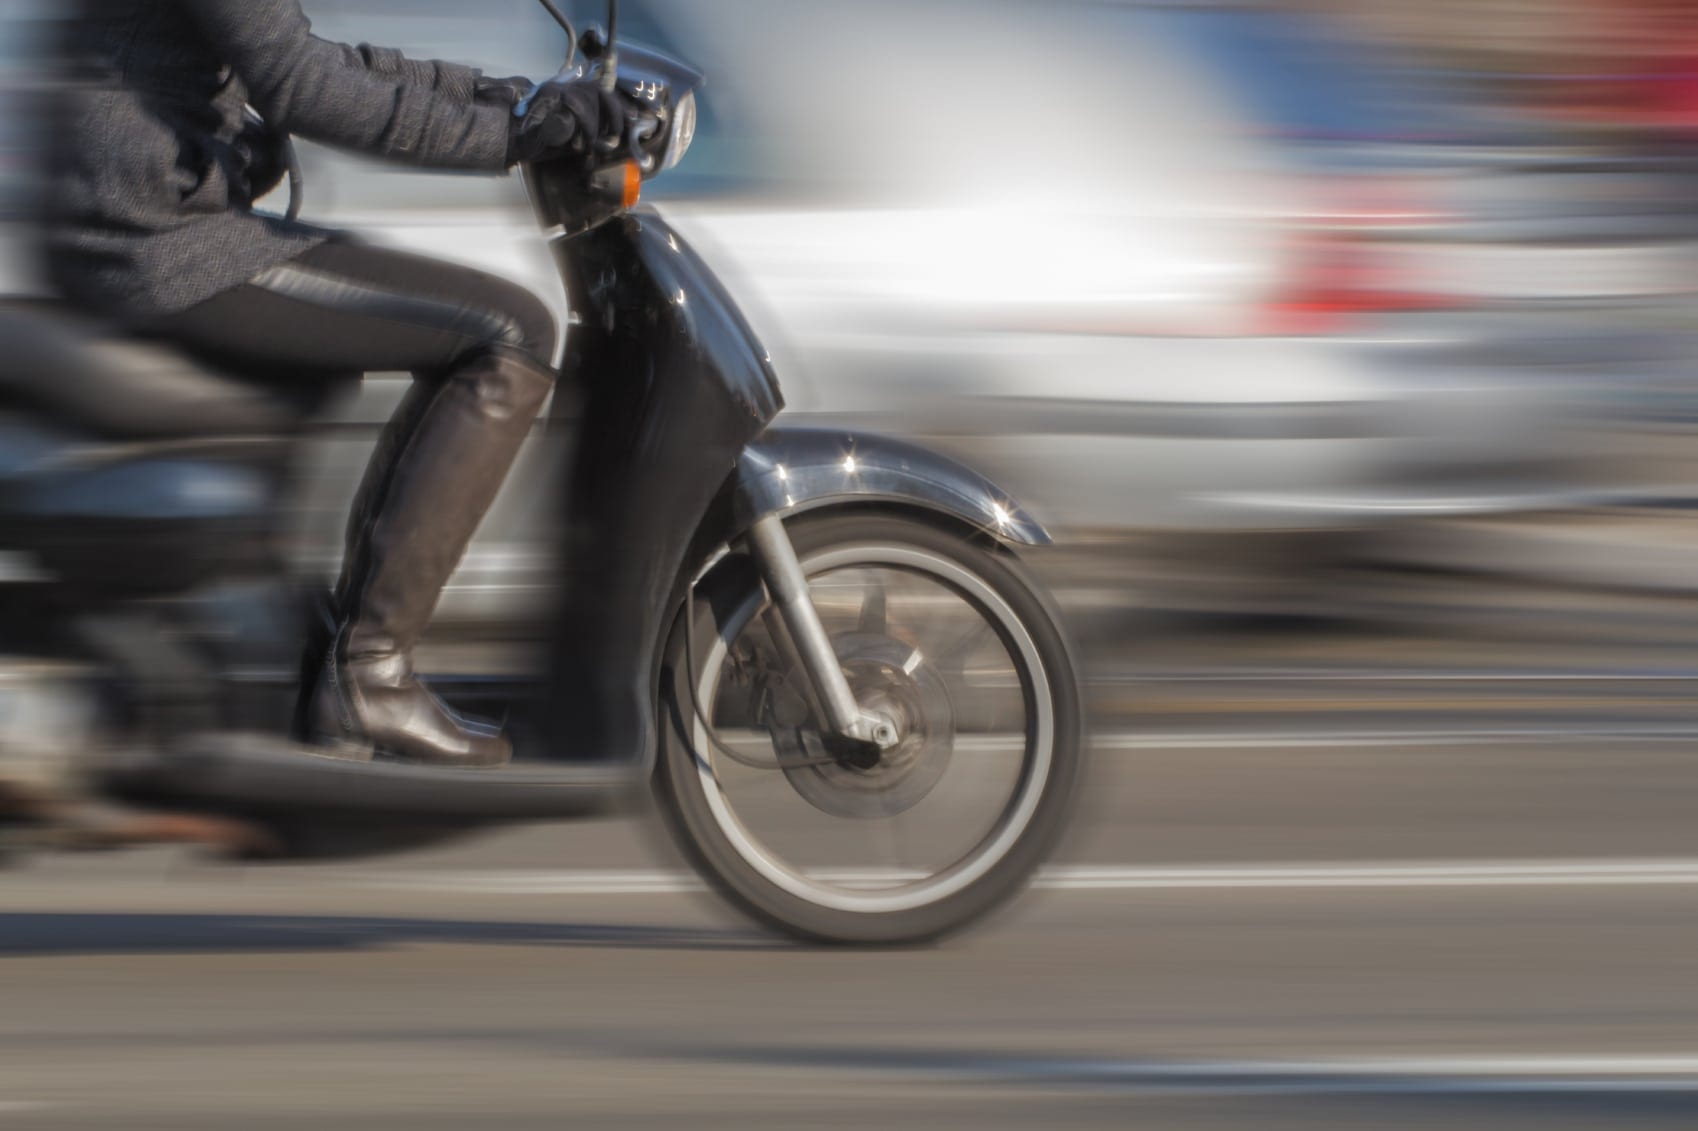 Man Riding Motorcycle In City Stock Photo